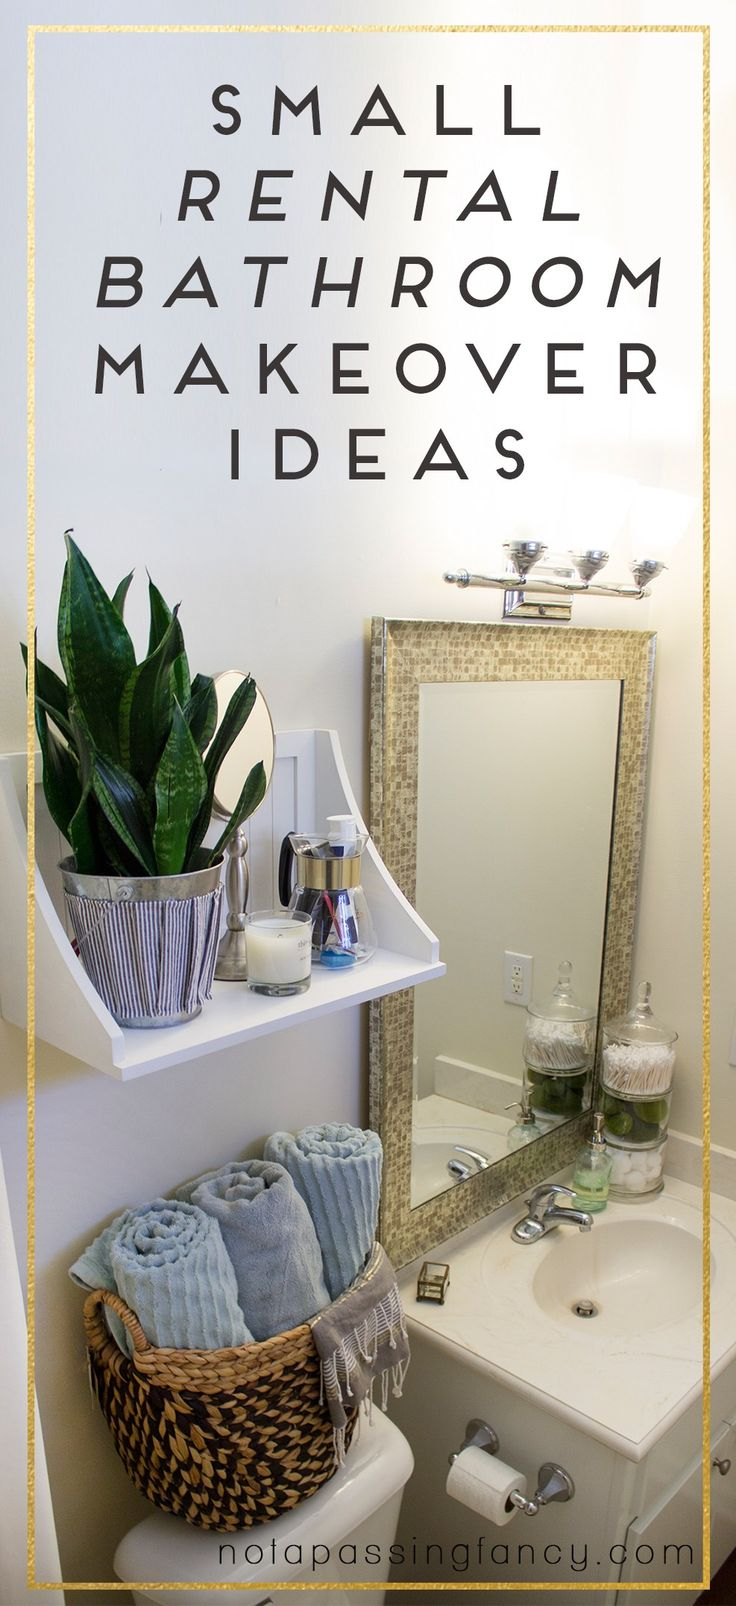 Bathroom Makeovers Pinterest 25+ best rental bathroom ideas on pinterest | small rental